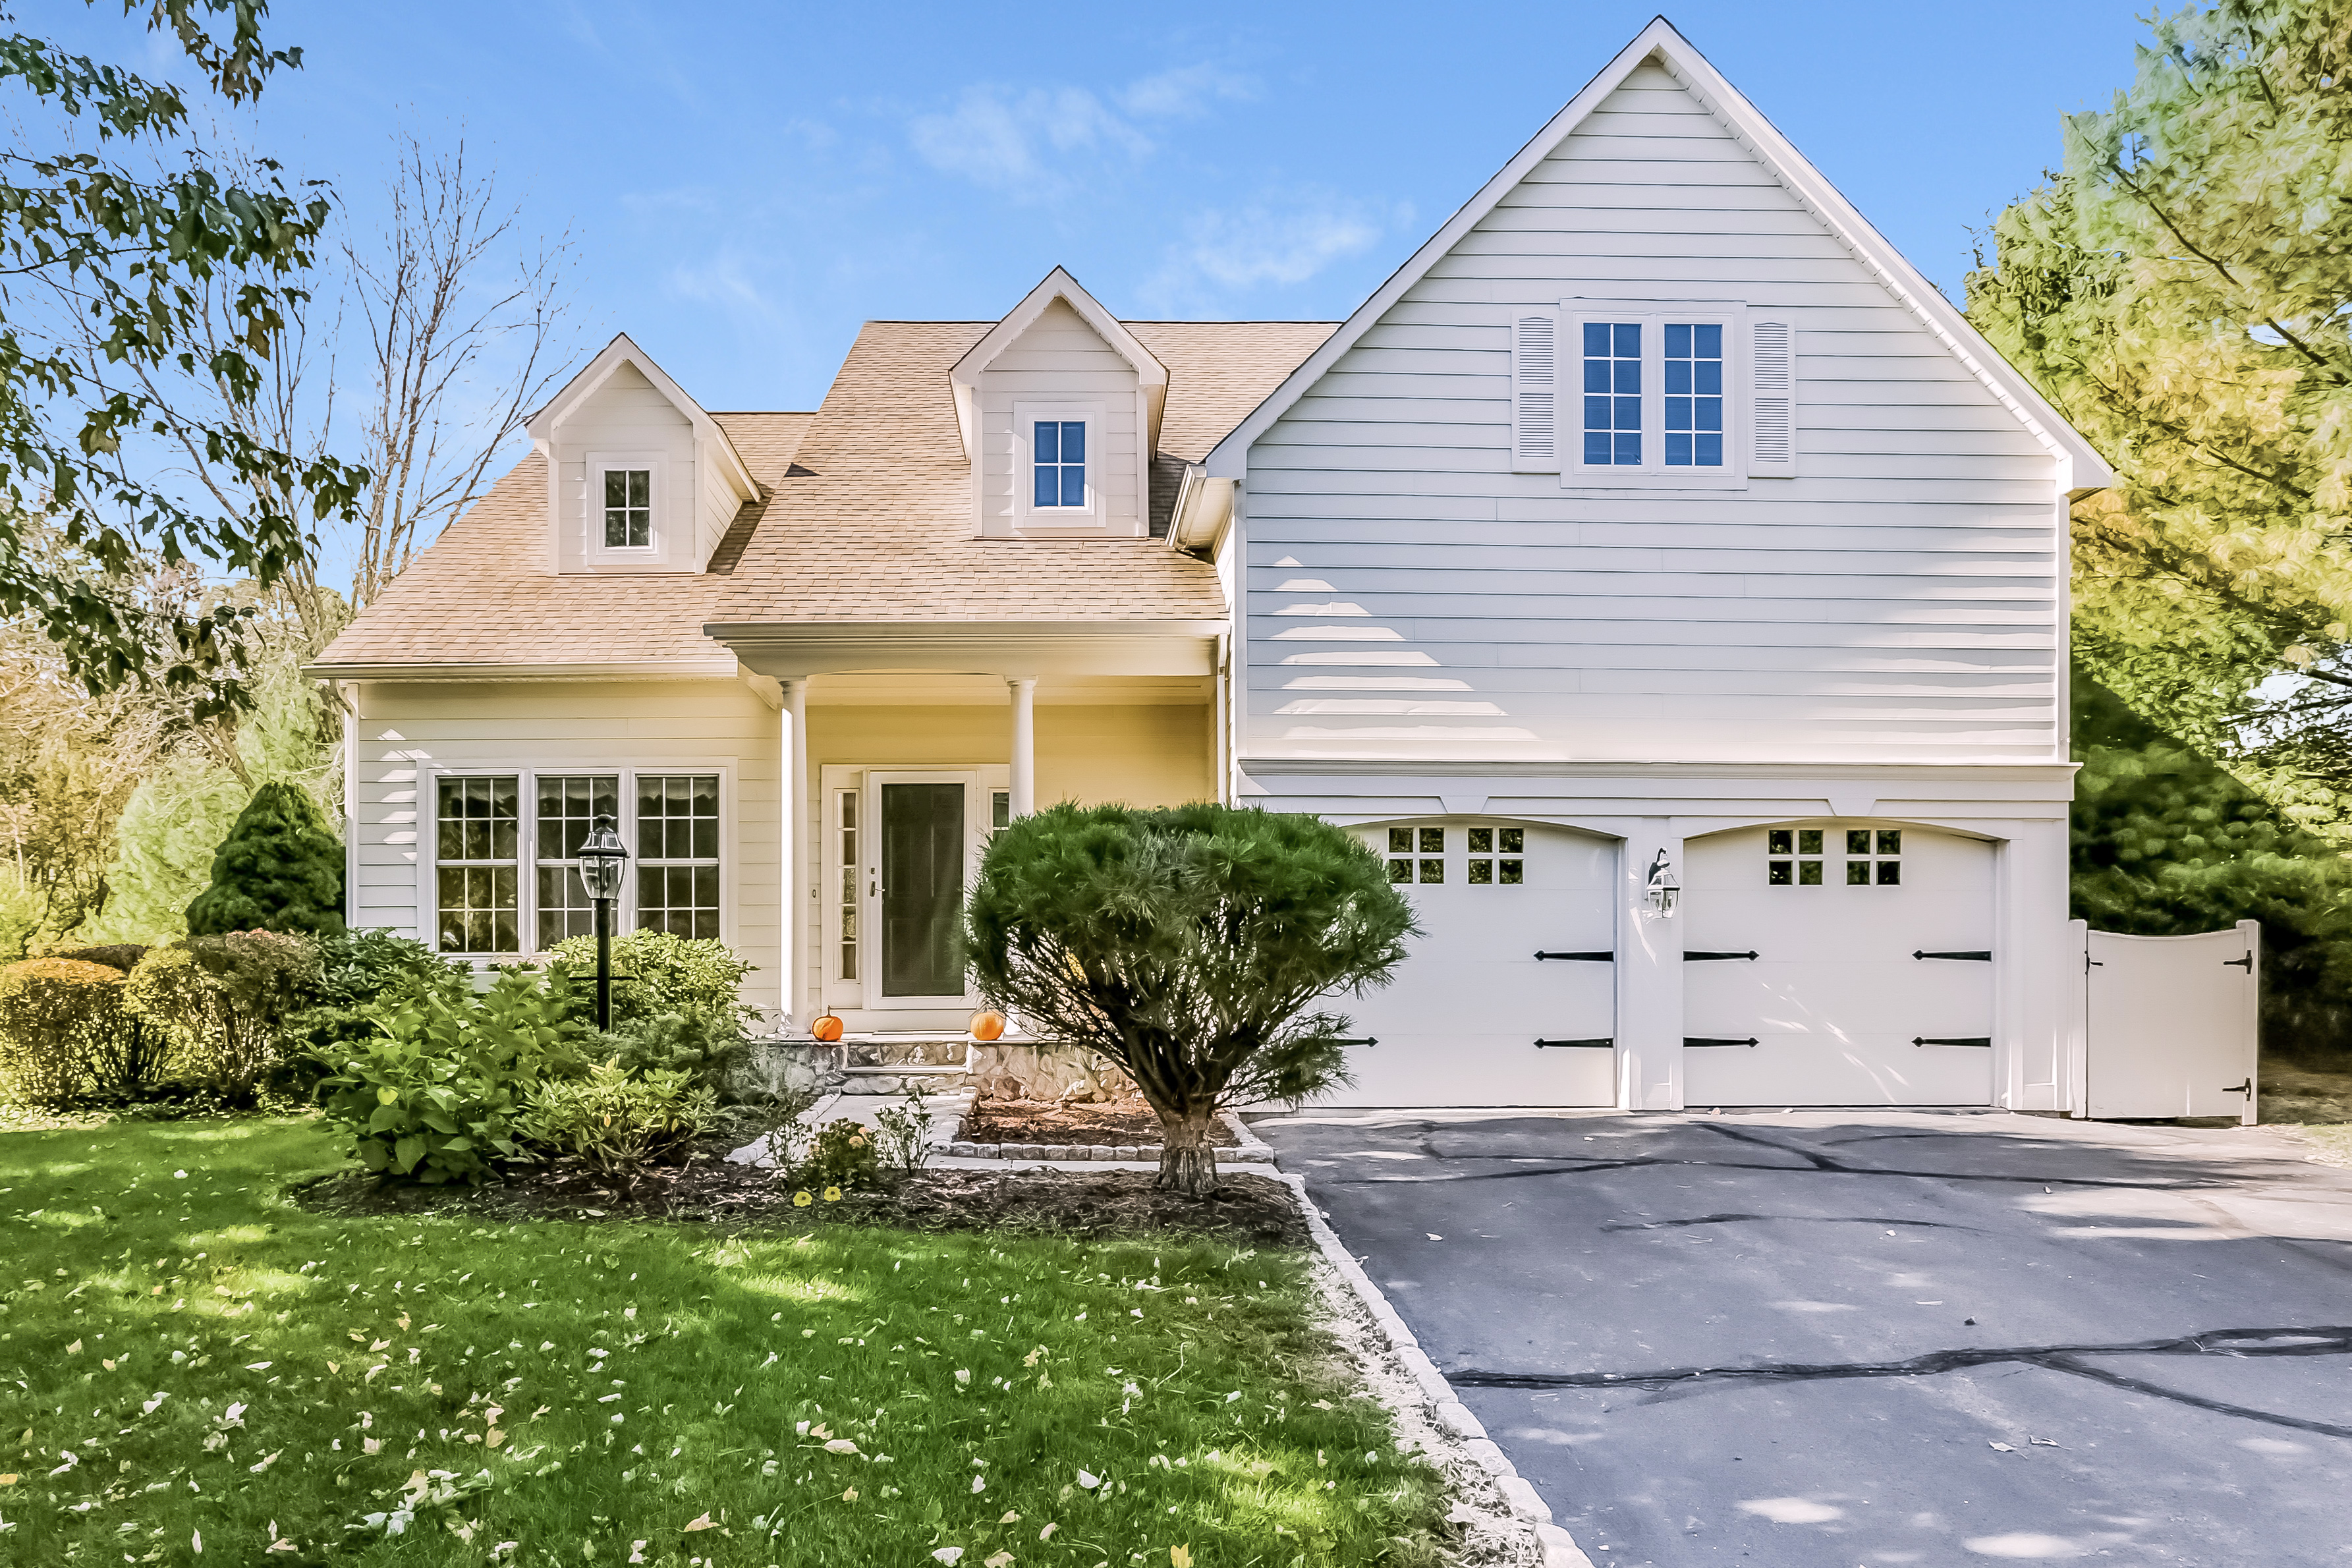 Townhouse for Sale at 1a New Canaan Way 1A New Canaan Way 1 Norwalk, Connecticut, 06850 United States